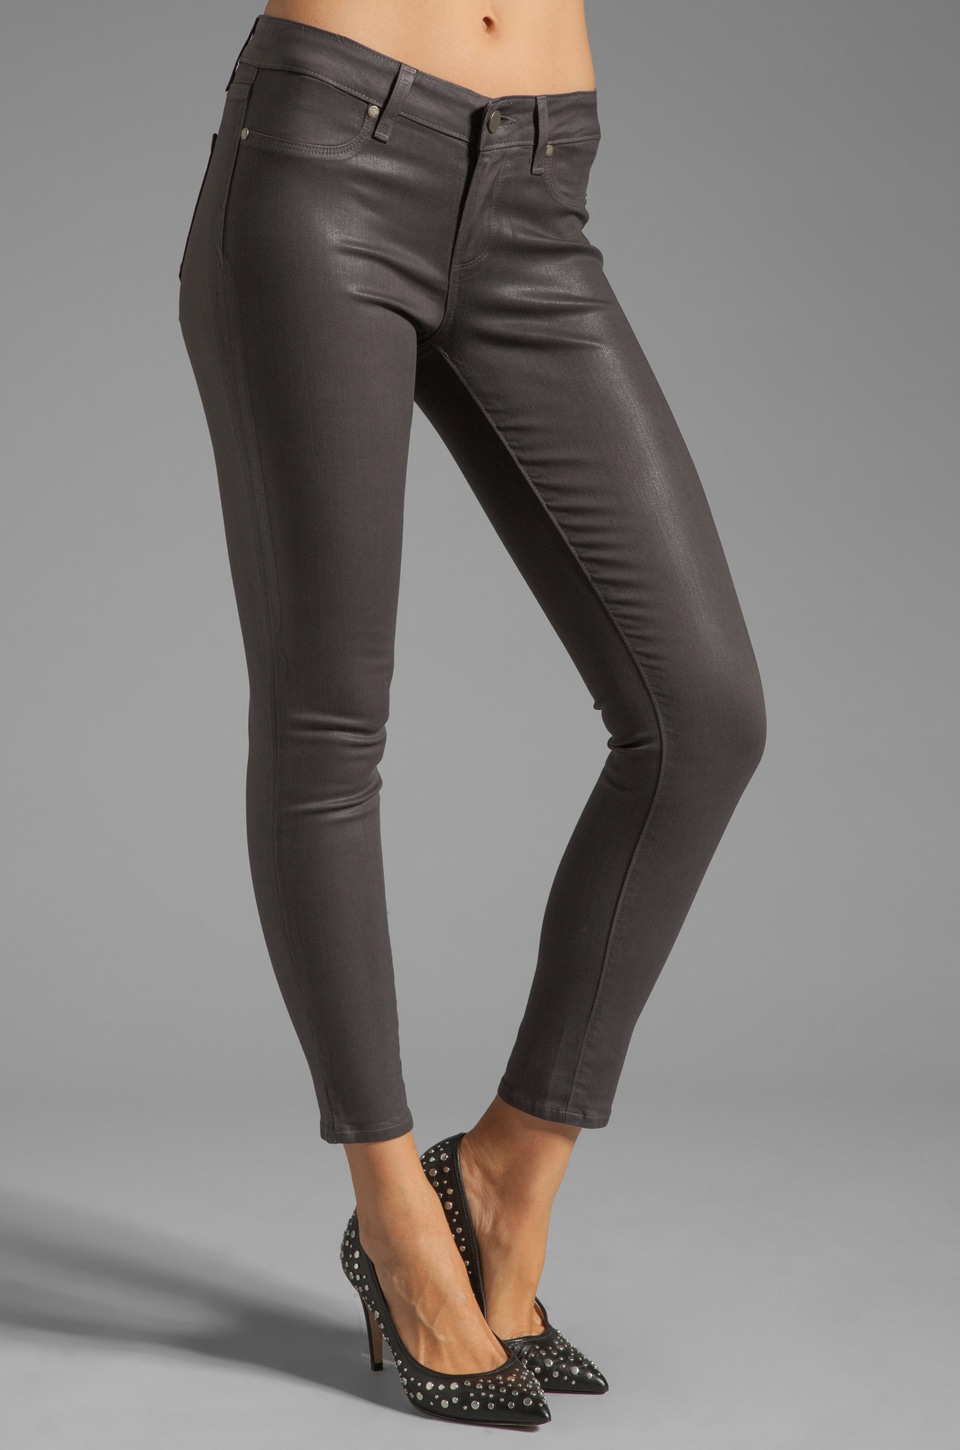 Paige Denim Verdugo Silk Coated Ankle in City Fog